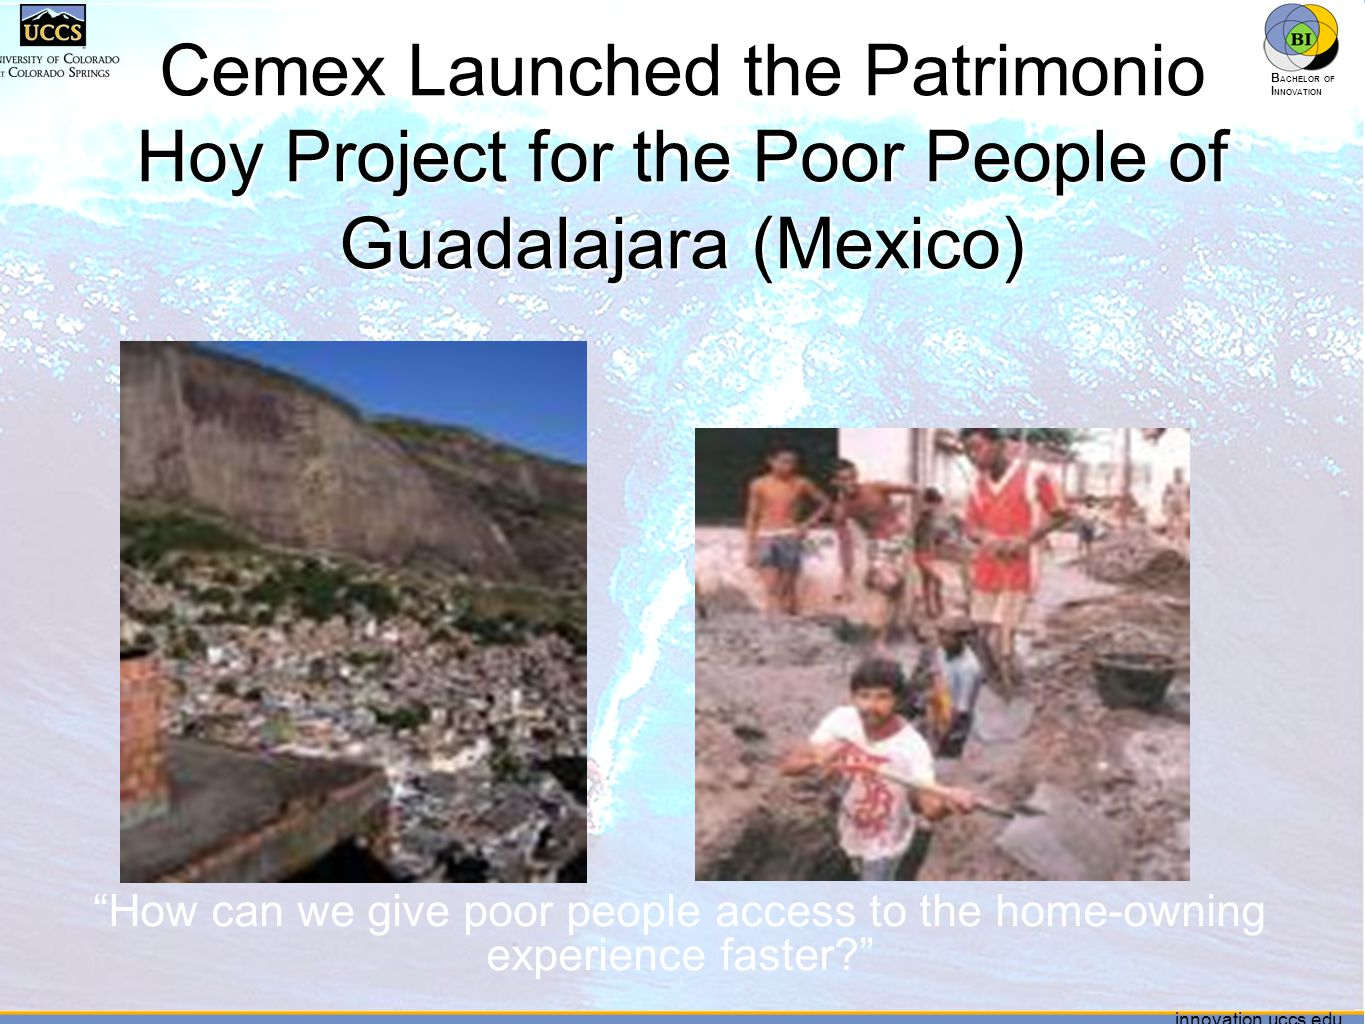 innovation.uccs.edu B ACHELOR OF I NNOVATION ™ innovation.uccs.edu B ACHELOR OF I NNOVATION ™ Cemex Launched the Patrimonio Hoy Project for the Poor People of Guadalajara (Mexico) How can we give poor people access to the home-owning experience faster